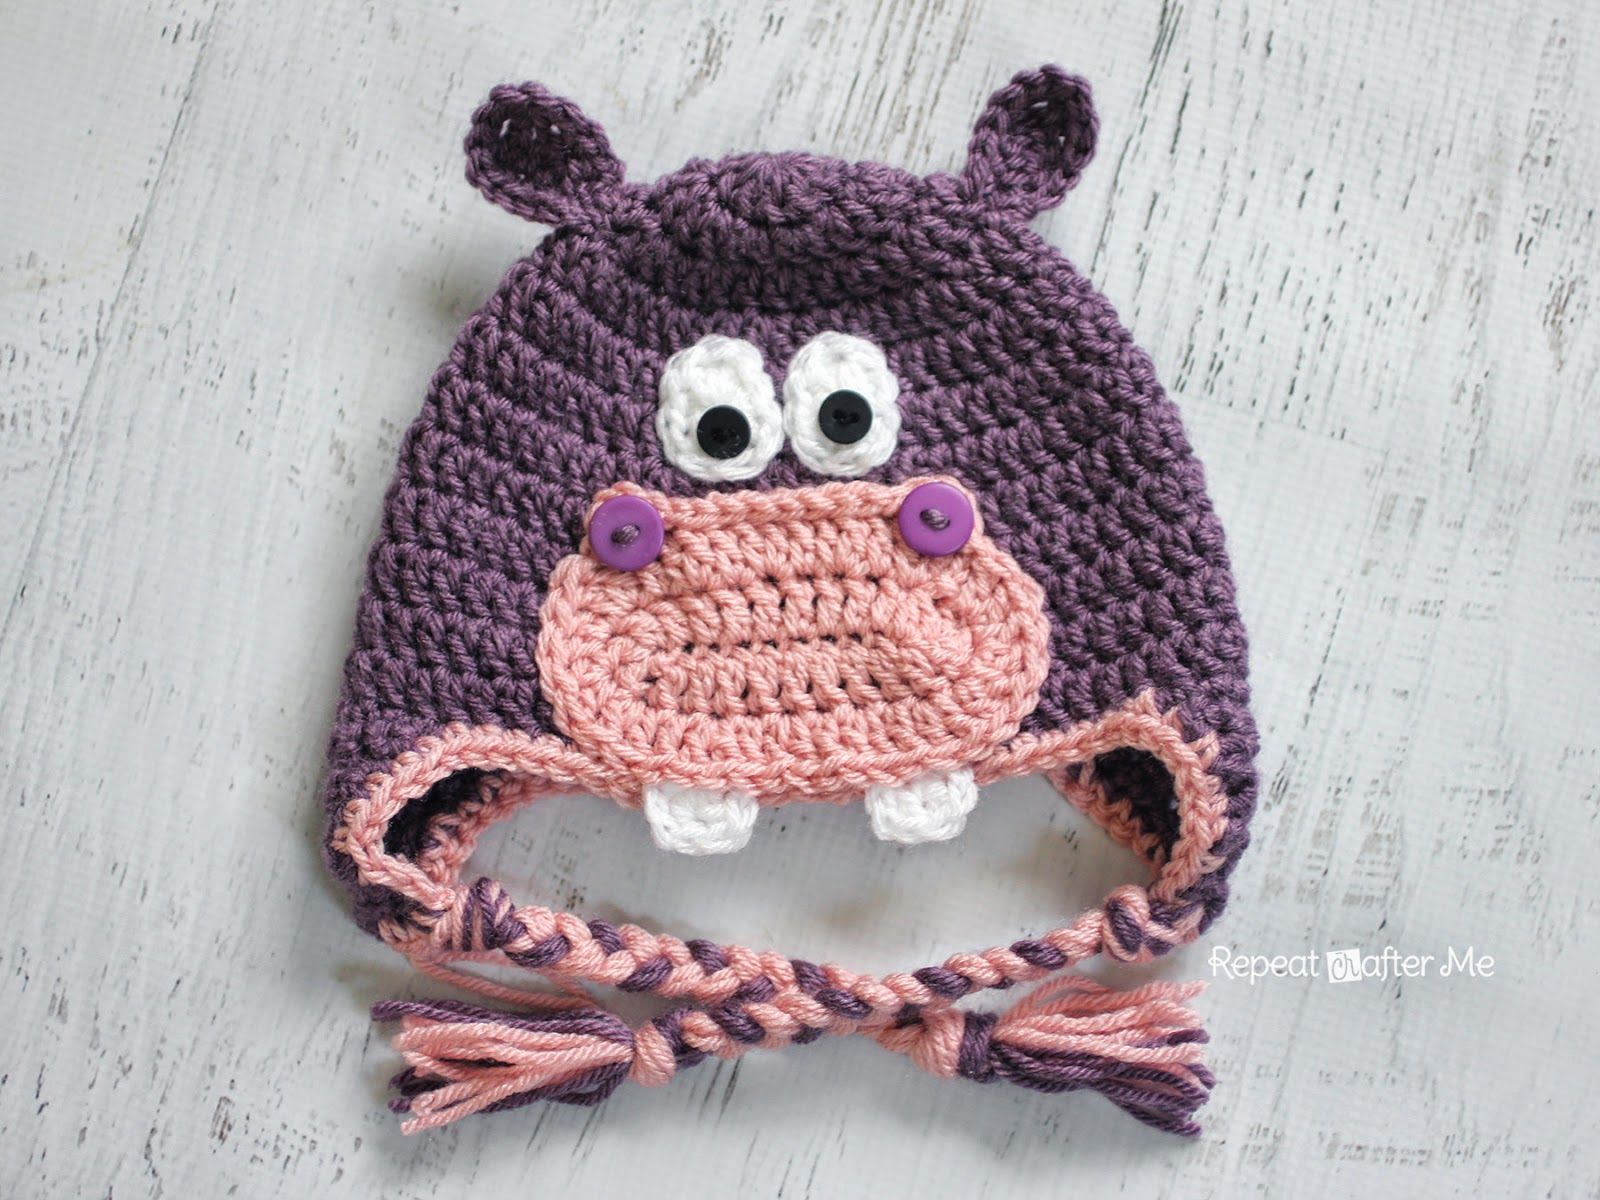 Repeat Crafter Me: Crochet Hippo Hat Pattern | gorros | Pinterest ...